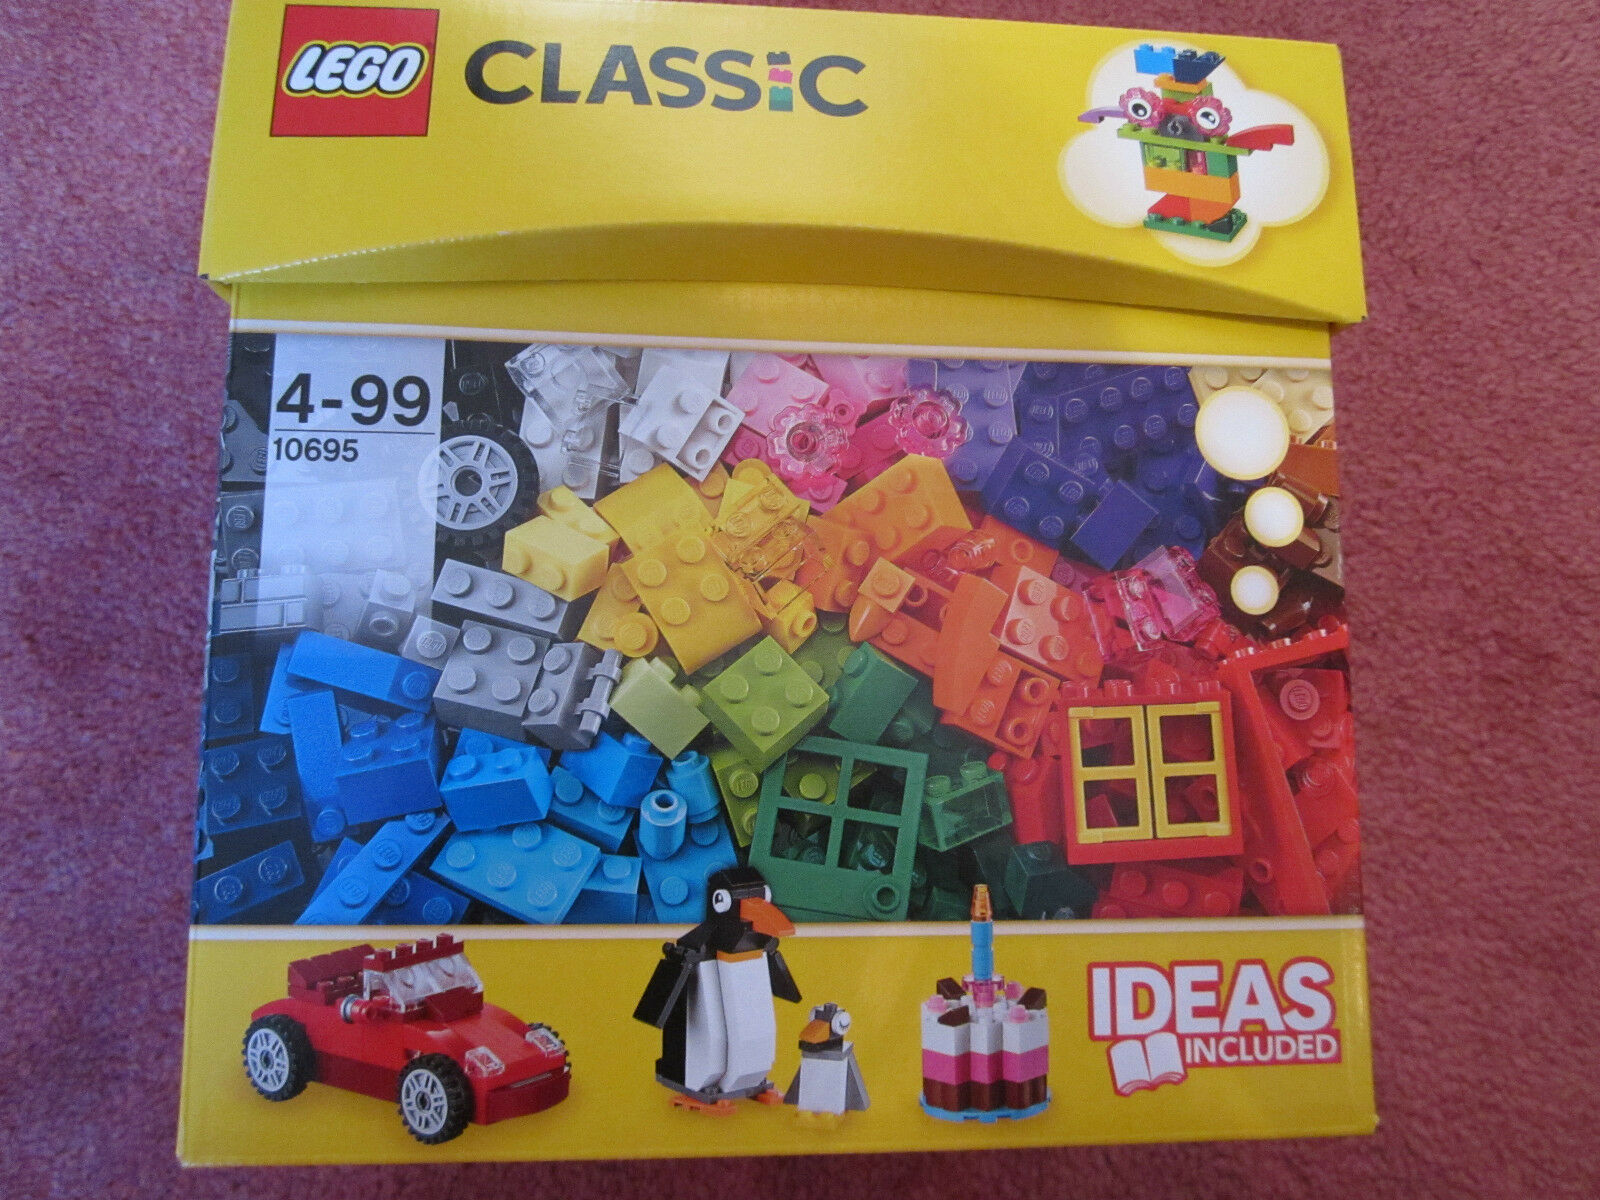 LEGO CLASSIC CREATIVE BUILDING BUILDING BUILDING BOX 10695 - 580 PIECES - NEW SEALED 530906